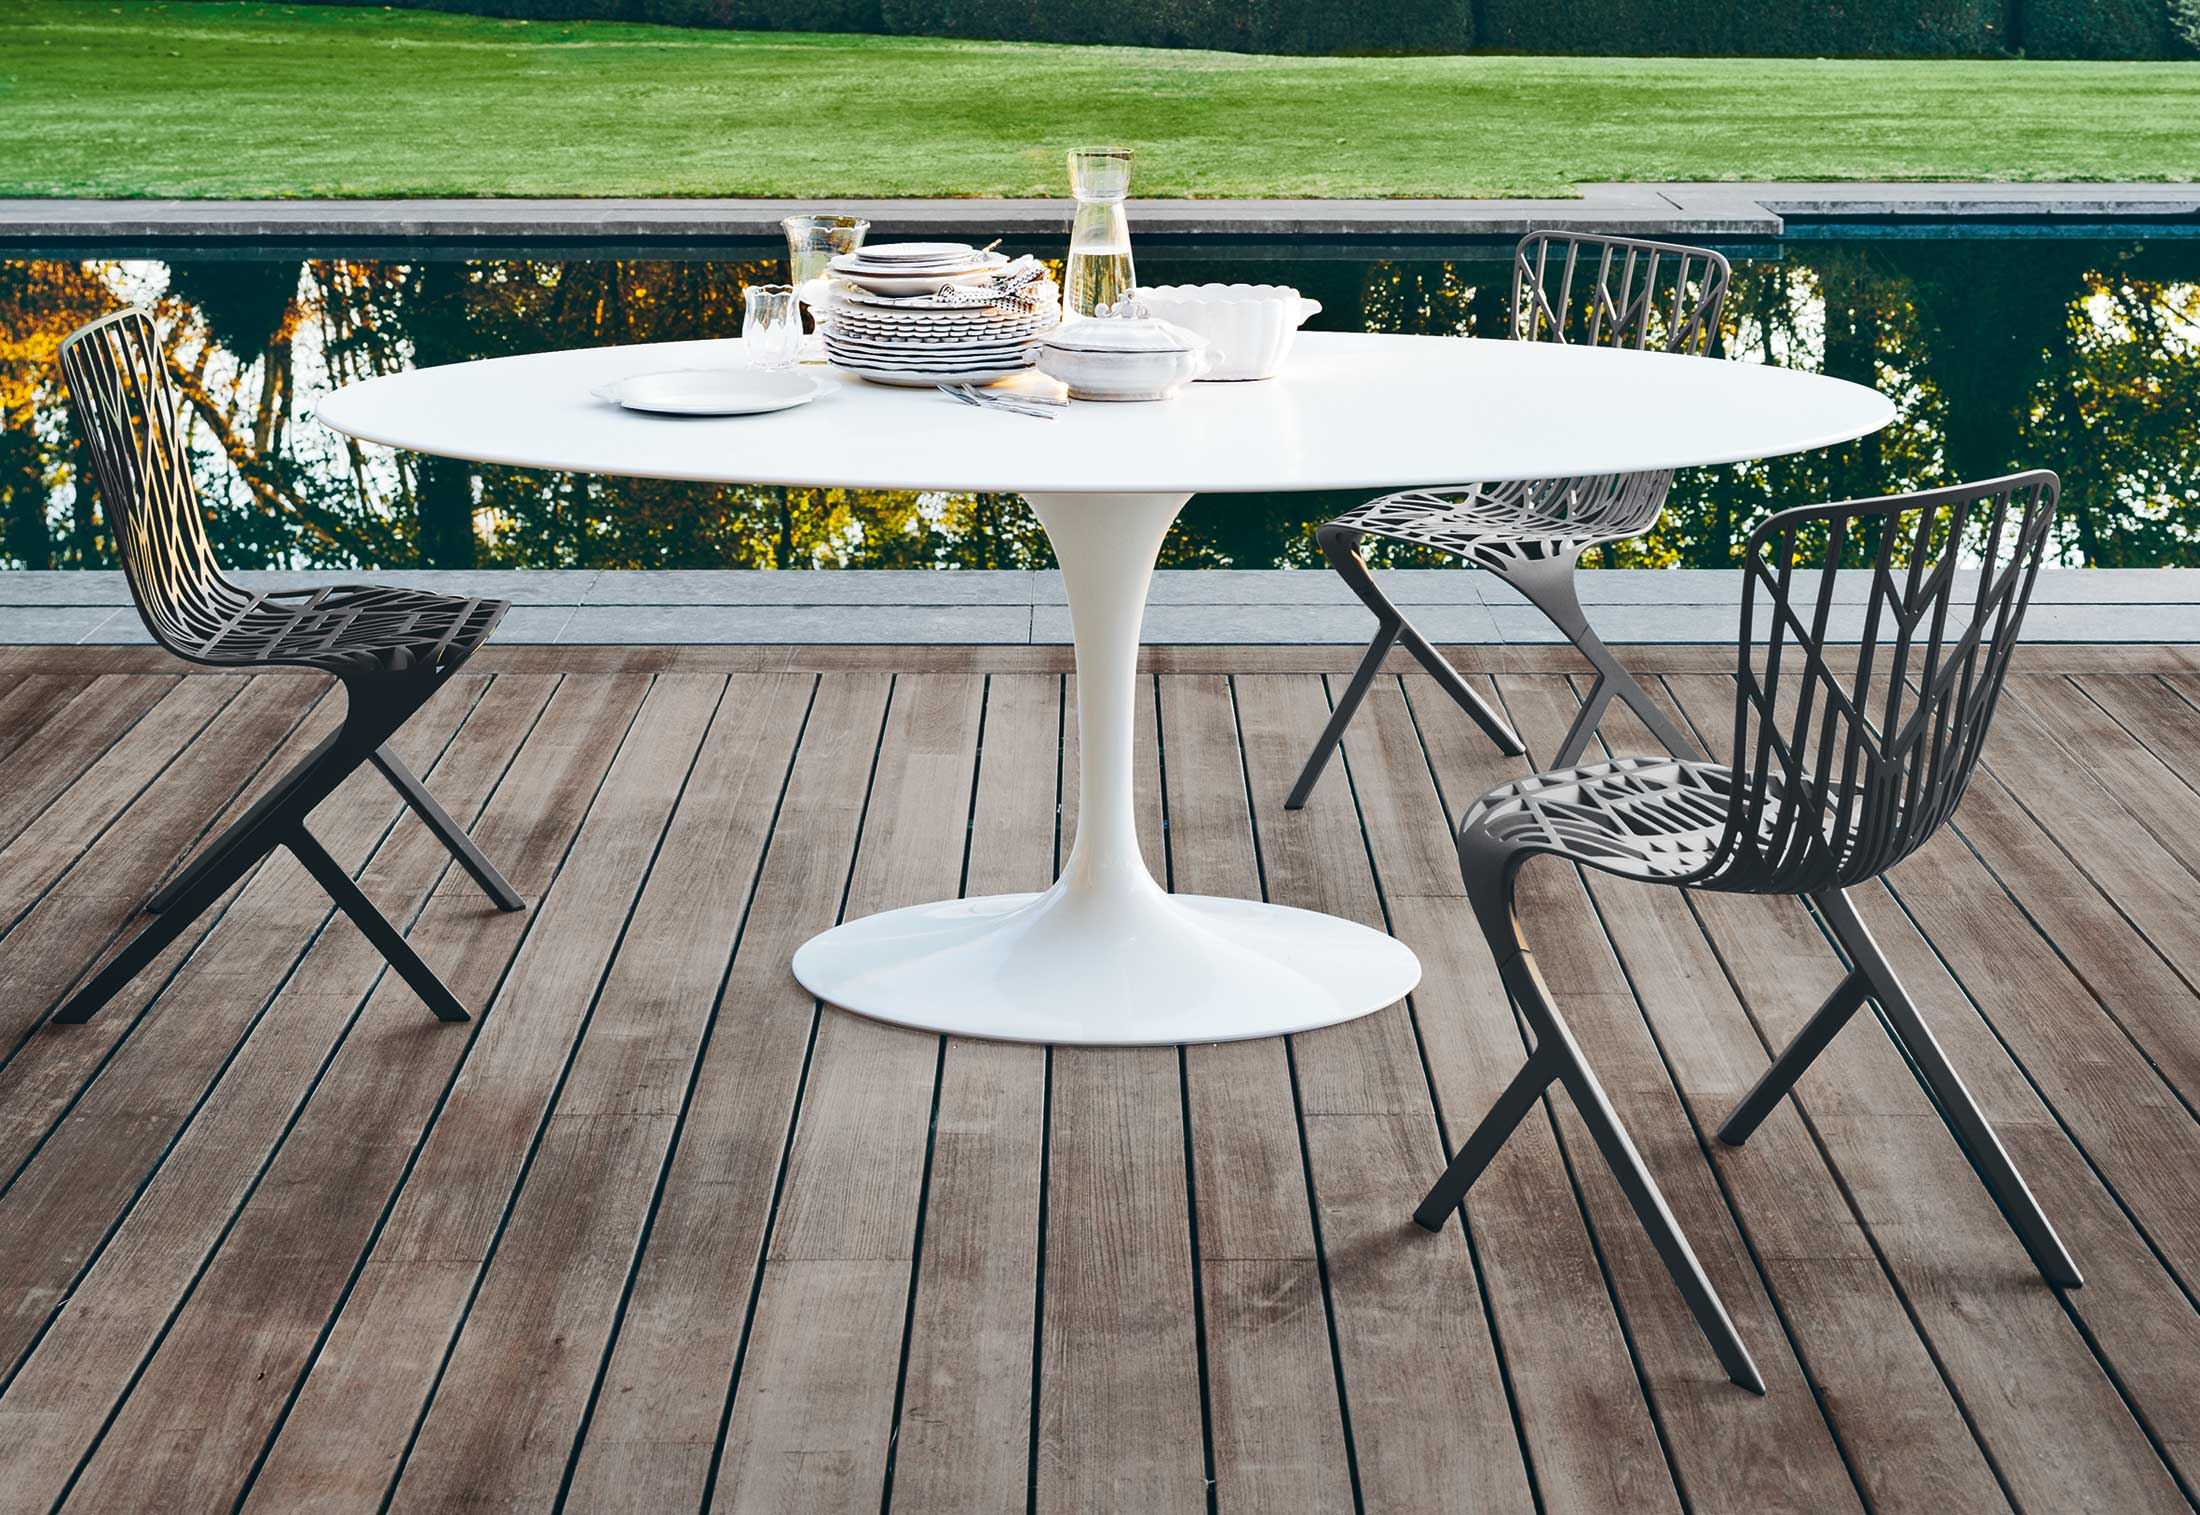 washington skeleton chair wood table and chairs by knoll stylepark